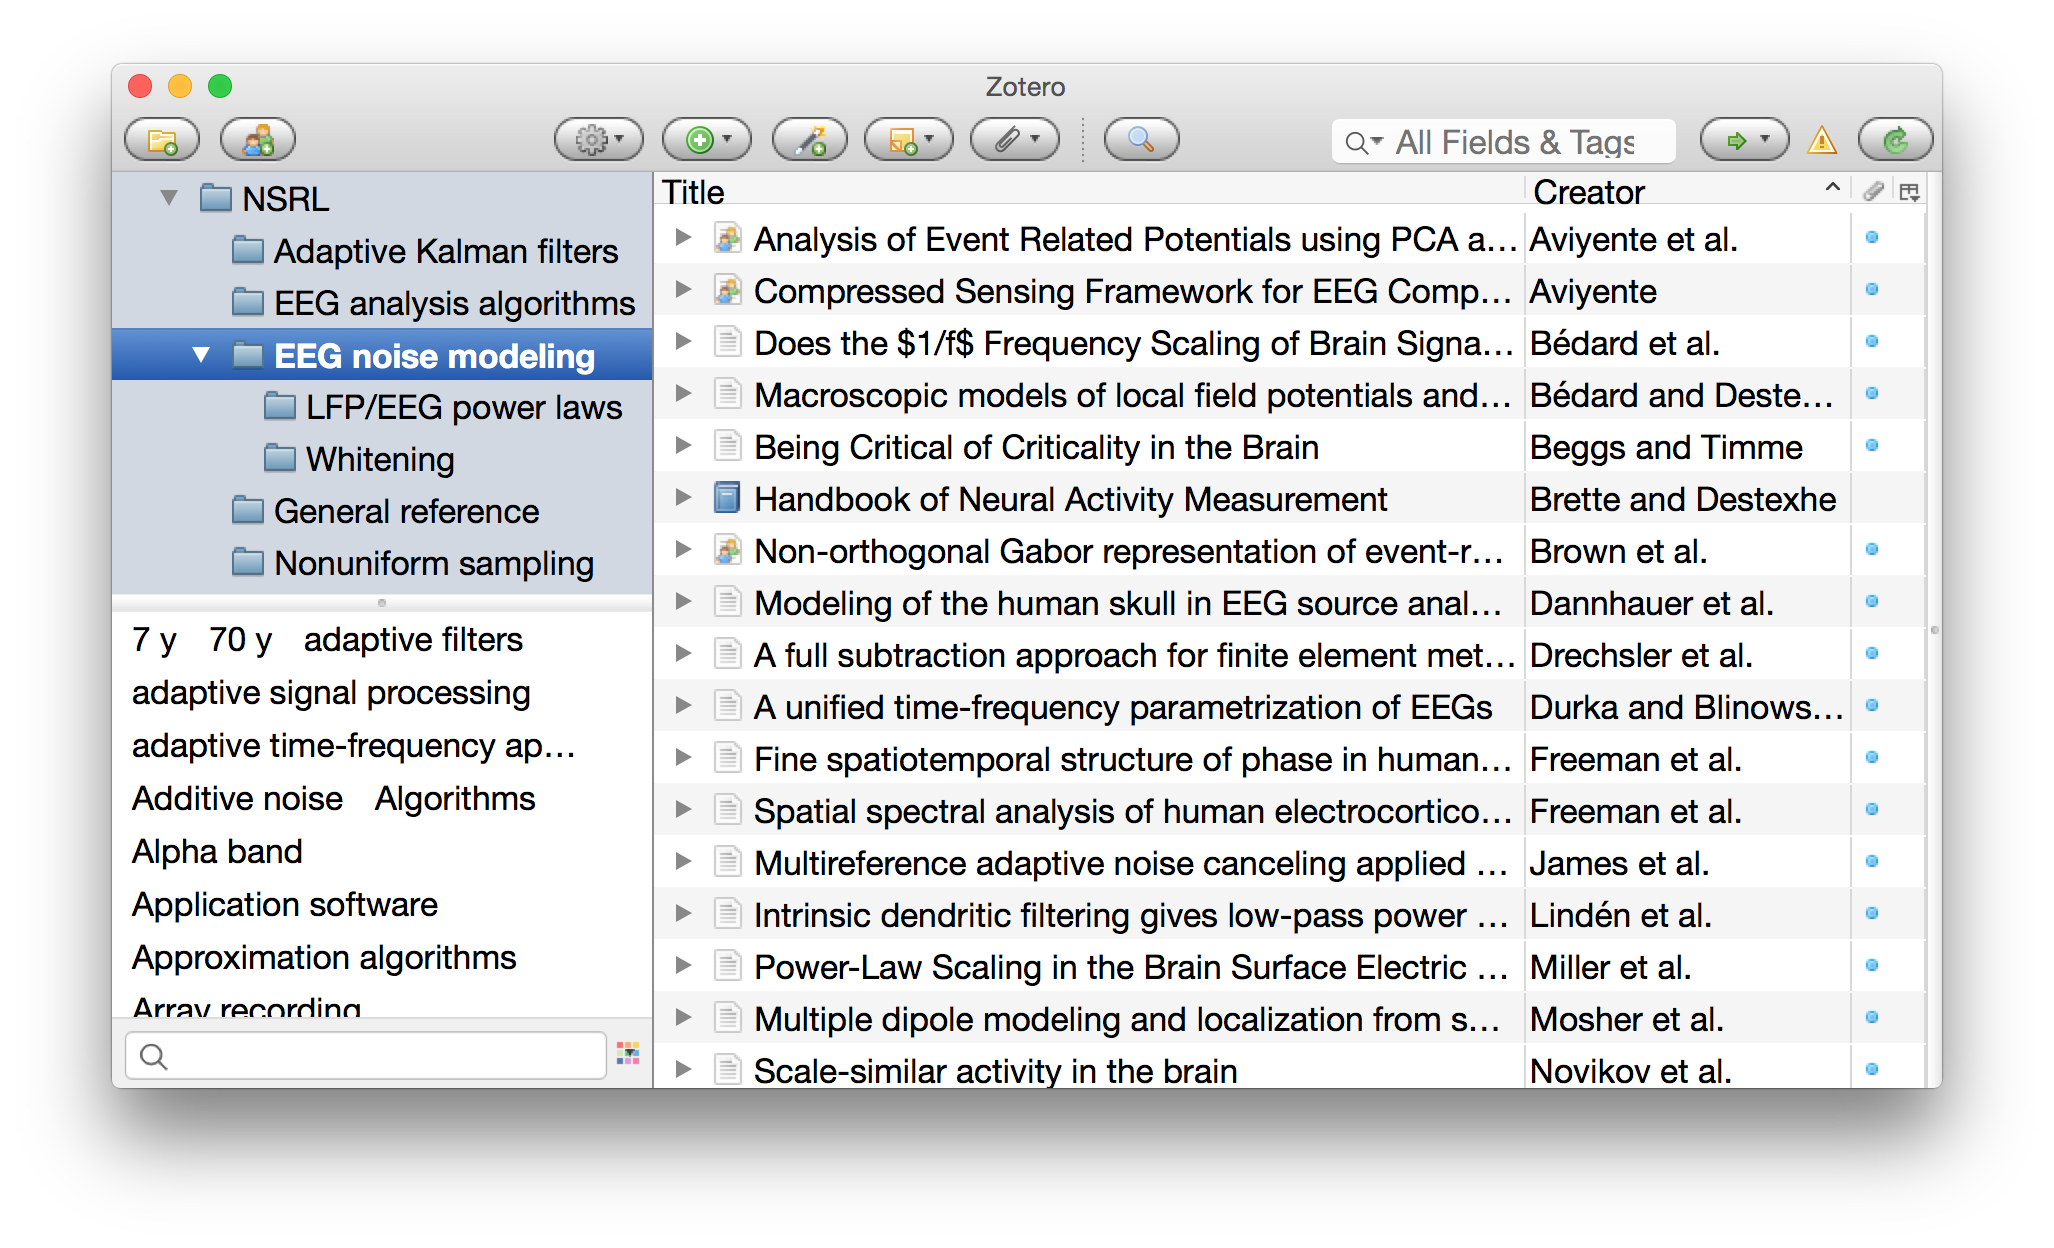 The Zotero interface.